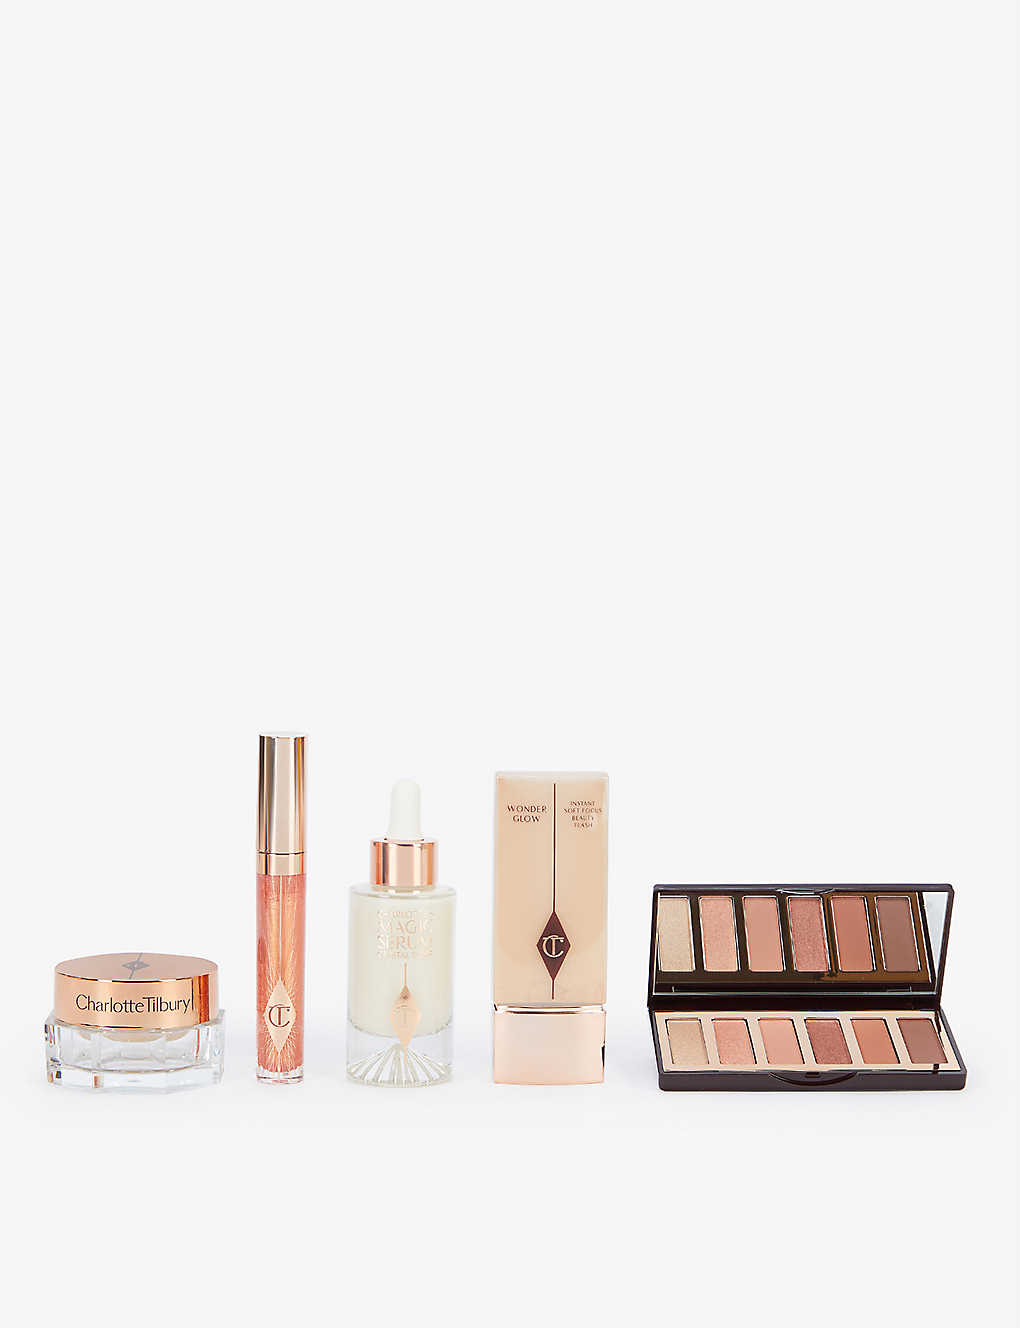 Selfridges x Charlotte Tilbury Glowing Skin Lip + Eye Kit